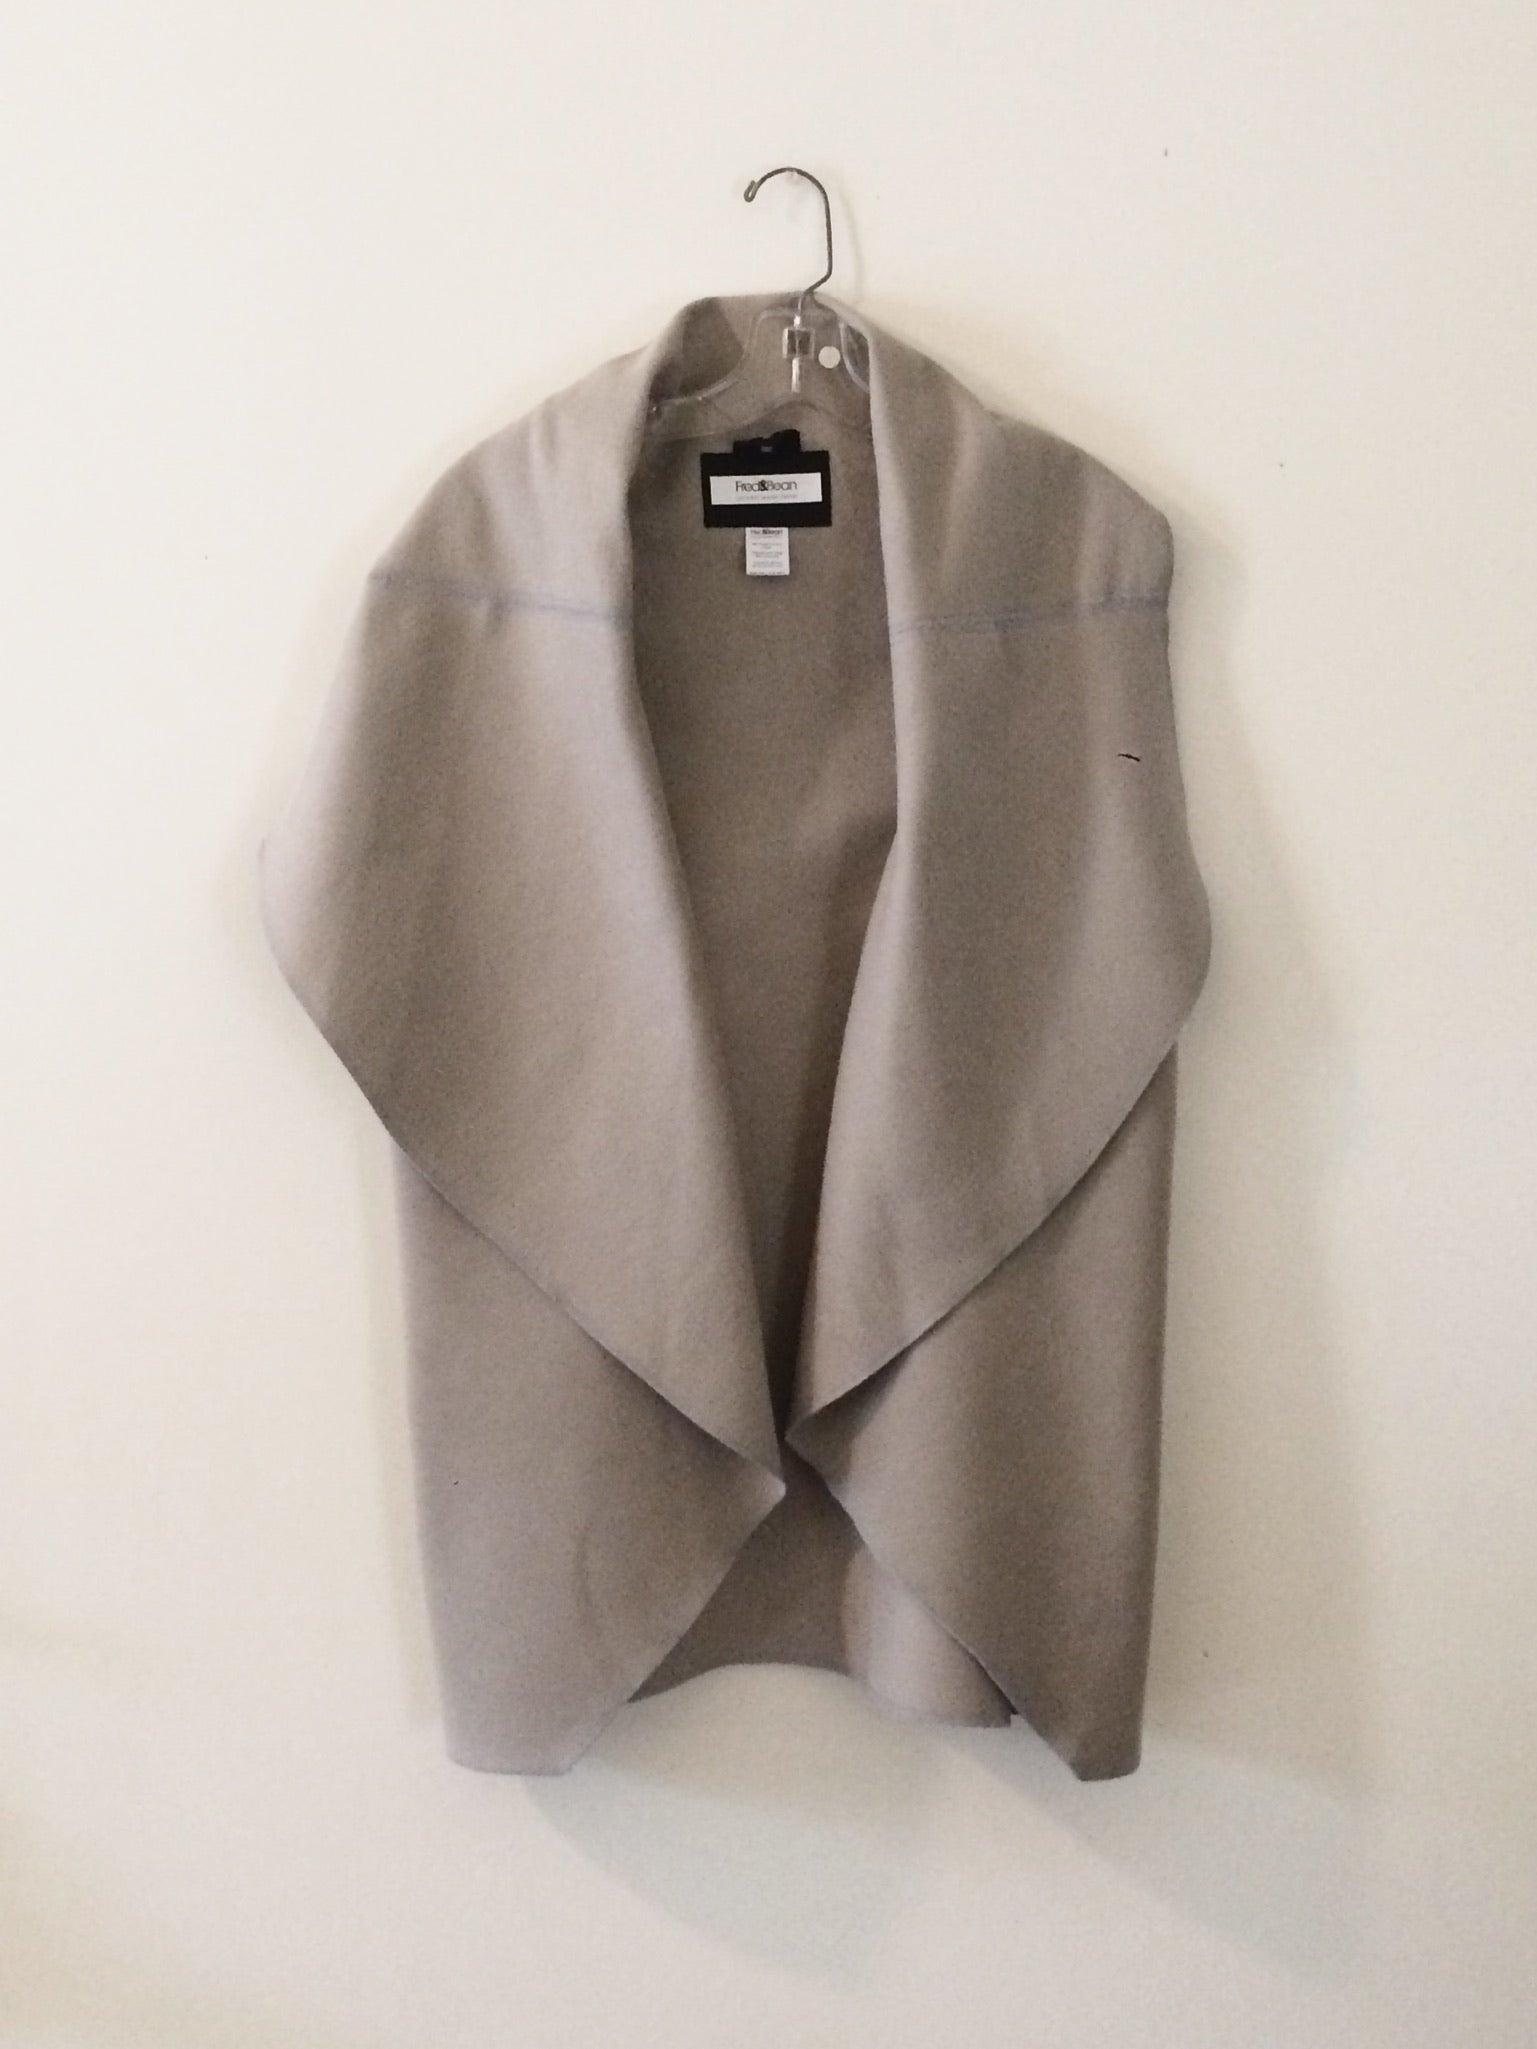 Blanket Vest - Short - Warm Smoke Grey - Brushed Cotton